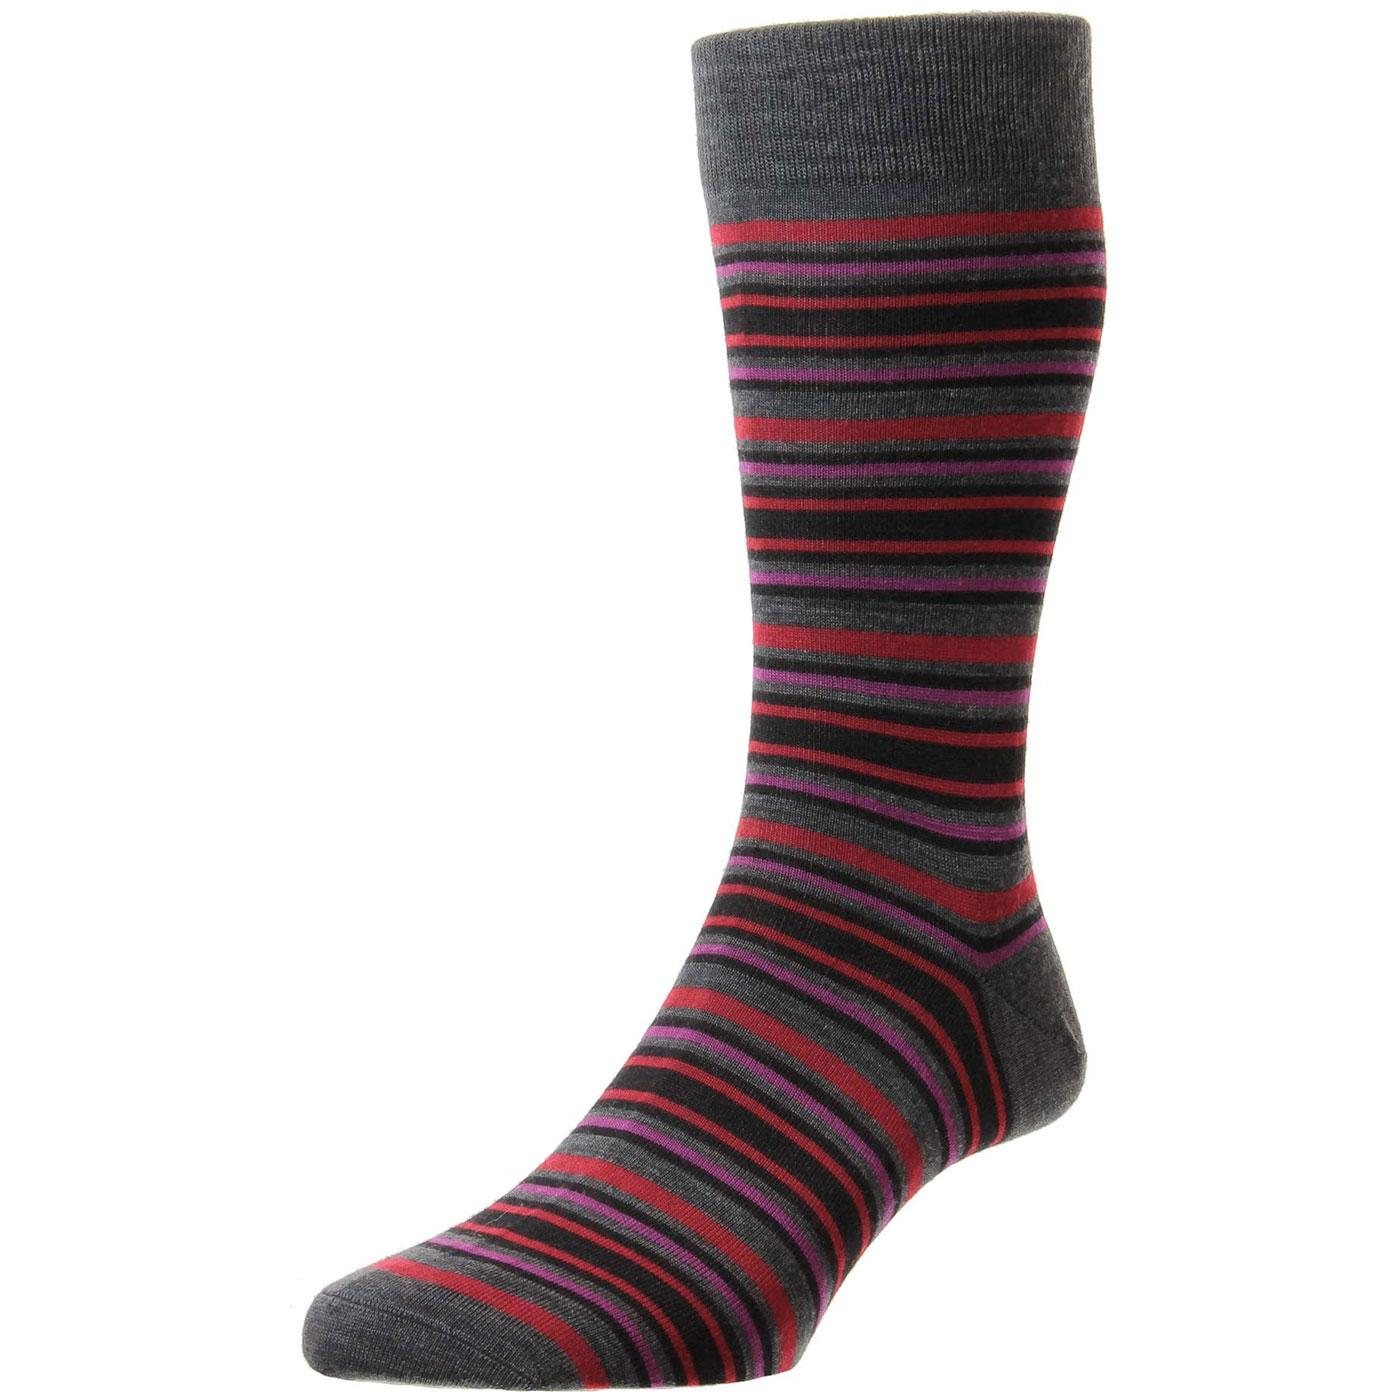 + Piper PANTHERELLA Men's Mod Striped Socks G